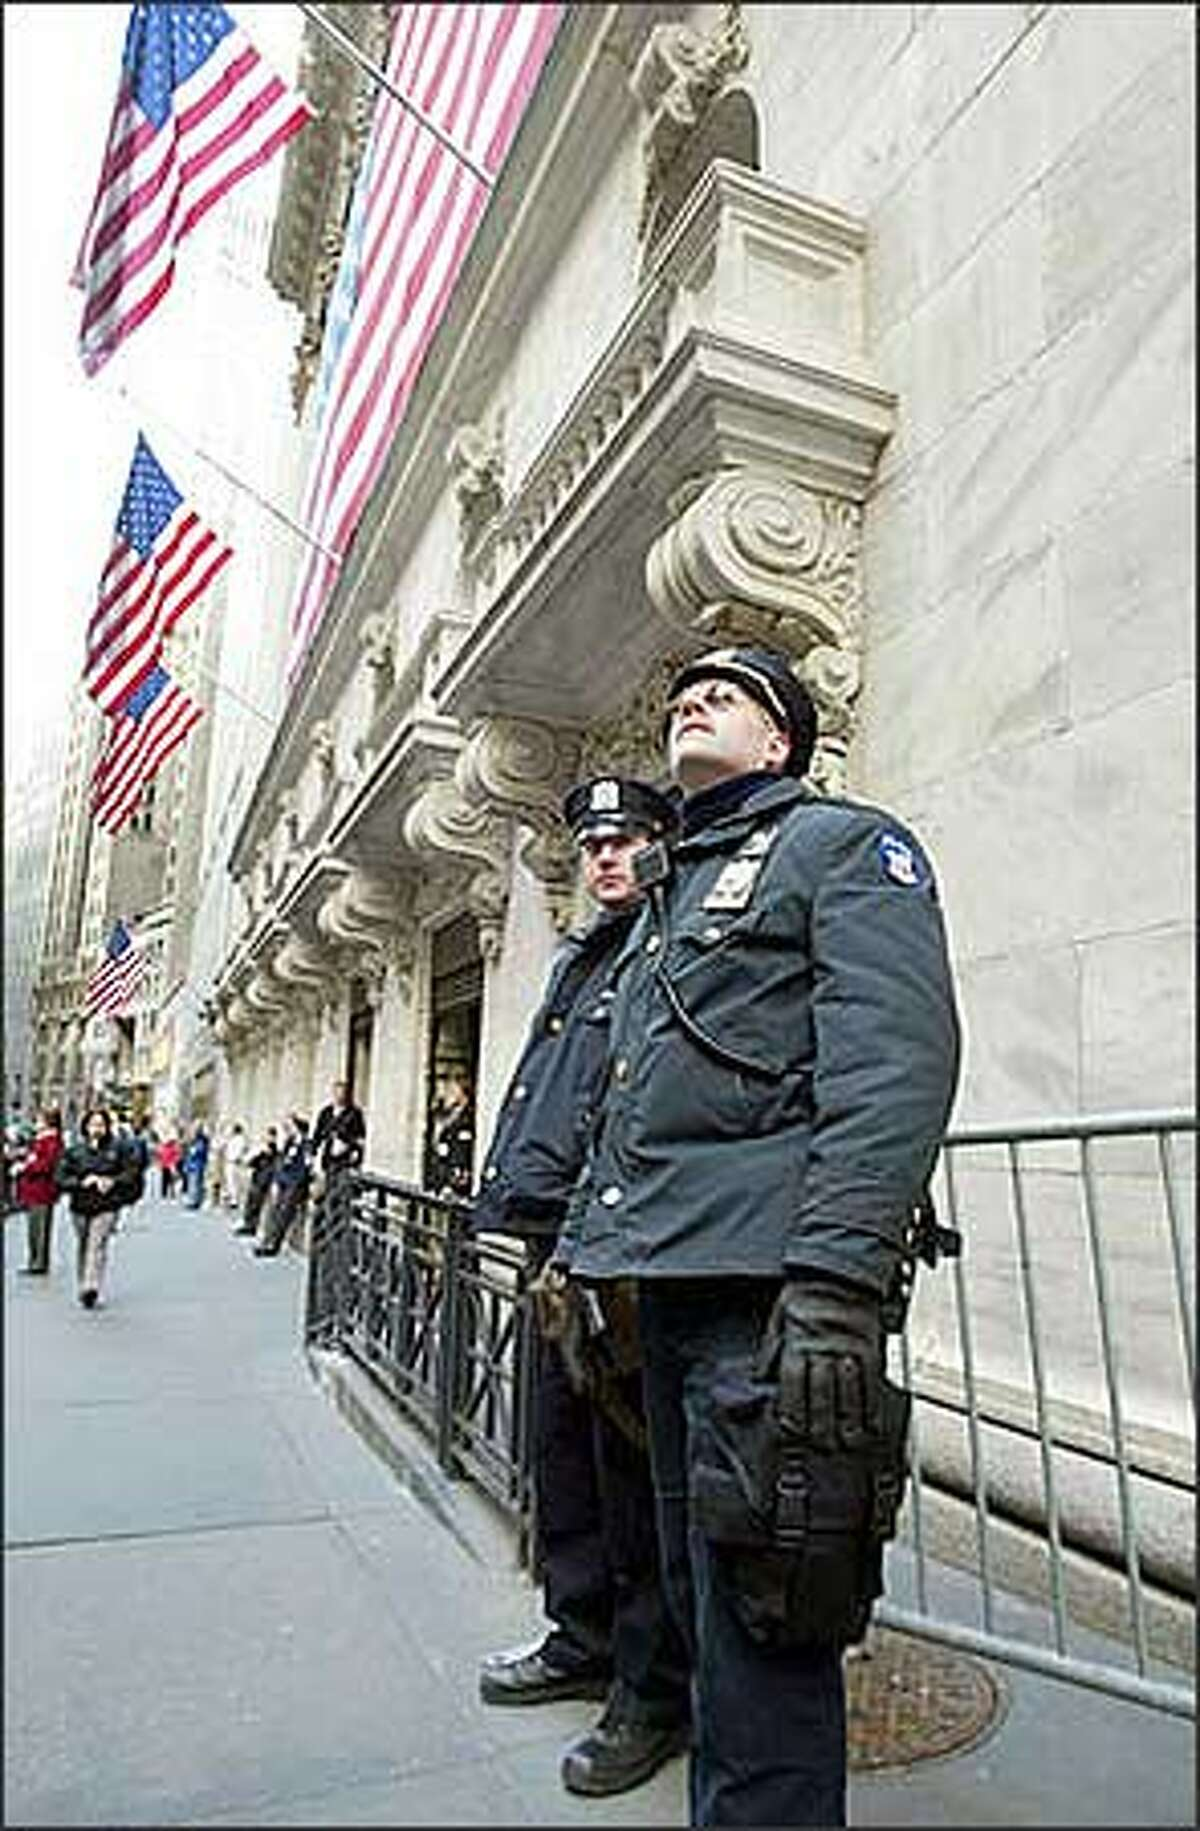 Police patrol outside The New York Stock Exchange Wednesday, Feb. 12, 2003. Police stepped up security at airports, subways and hotels and other public places after the nation was put on heightened terrorist alert and law enforcement officials indicated New York was a possible target. (AP Photo/David Karp)